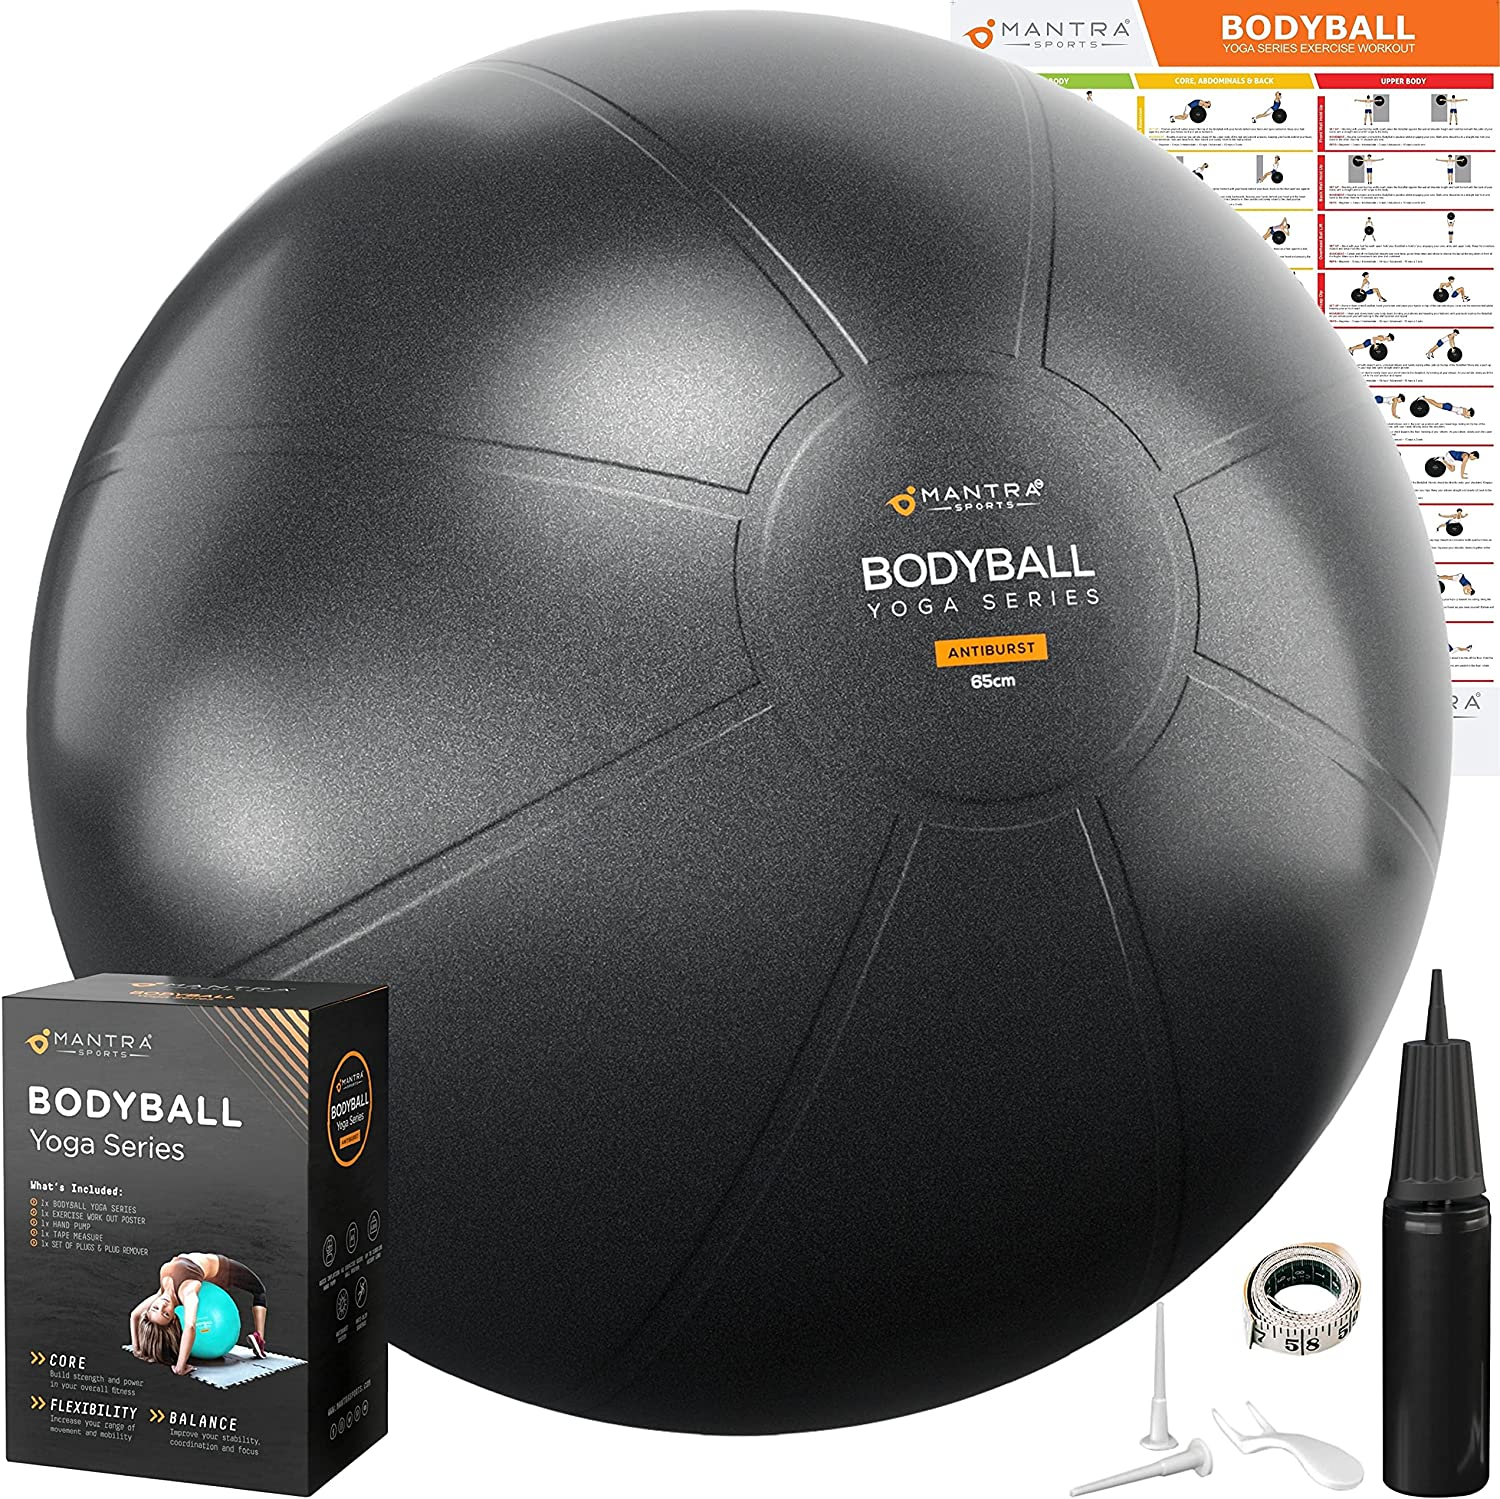 Improve your posture in your home office with a yoga ball chair